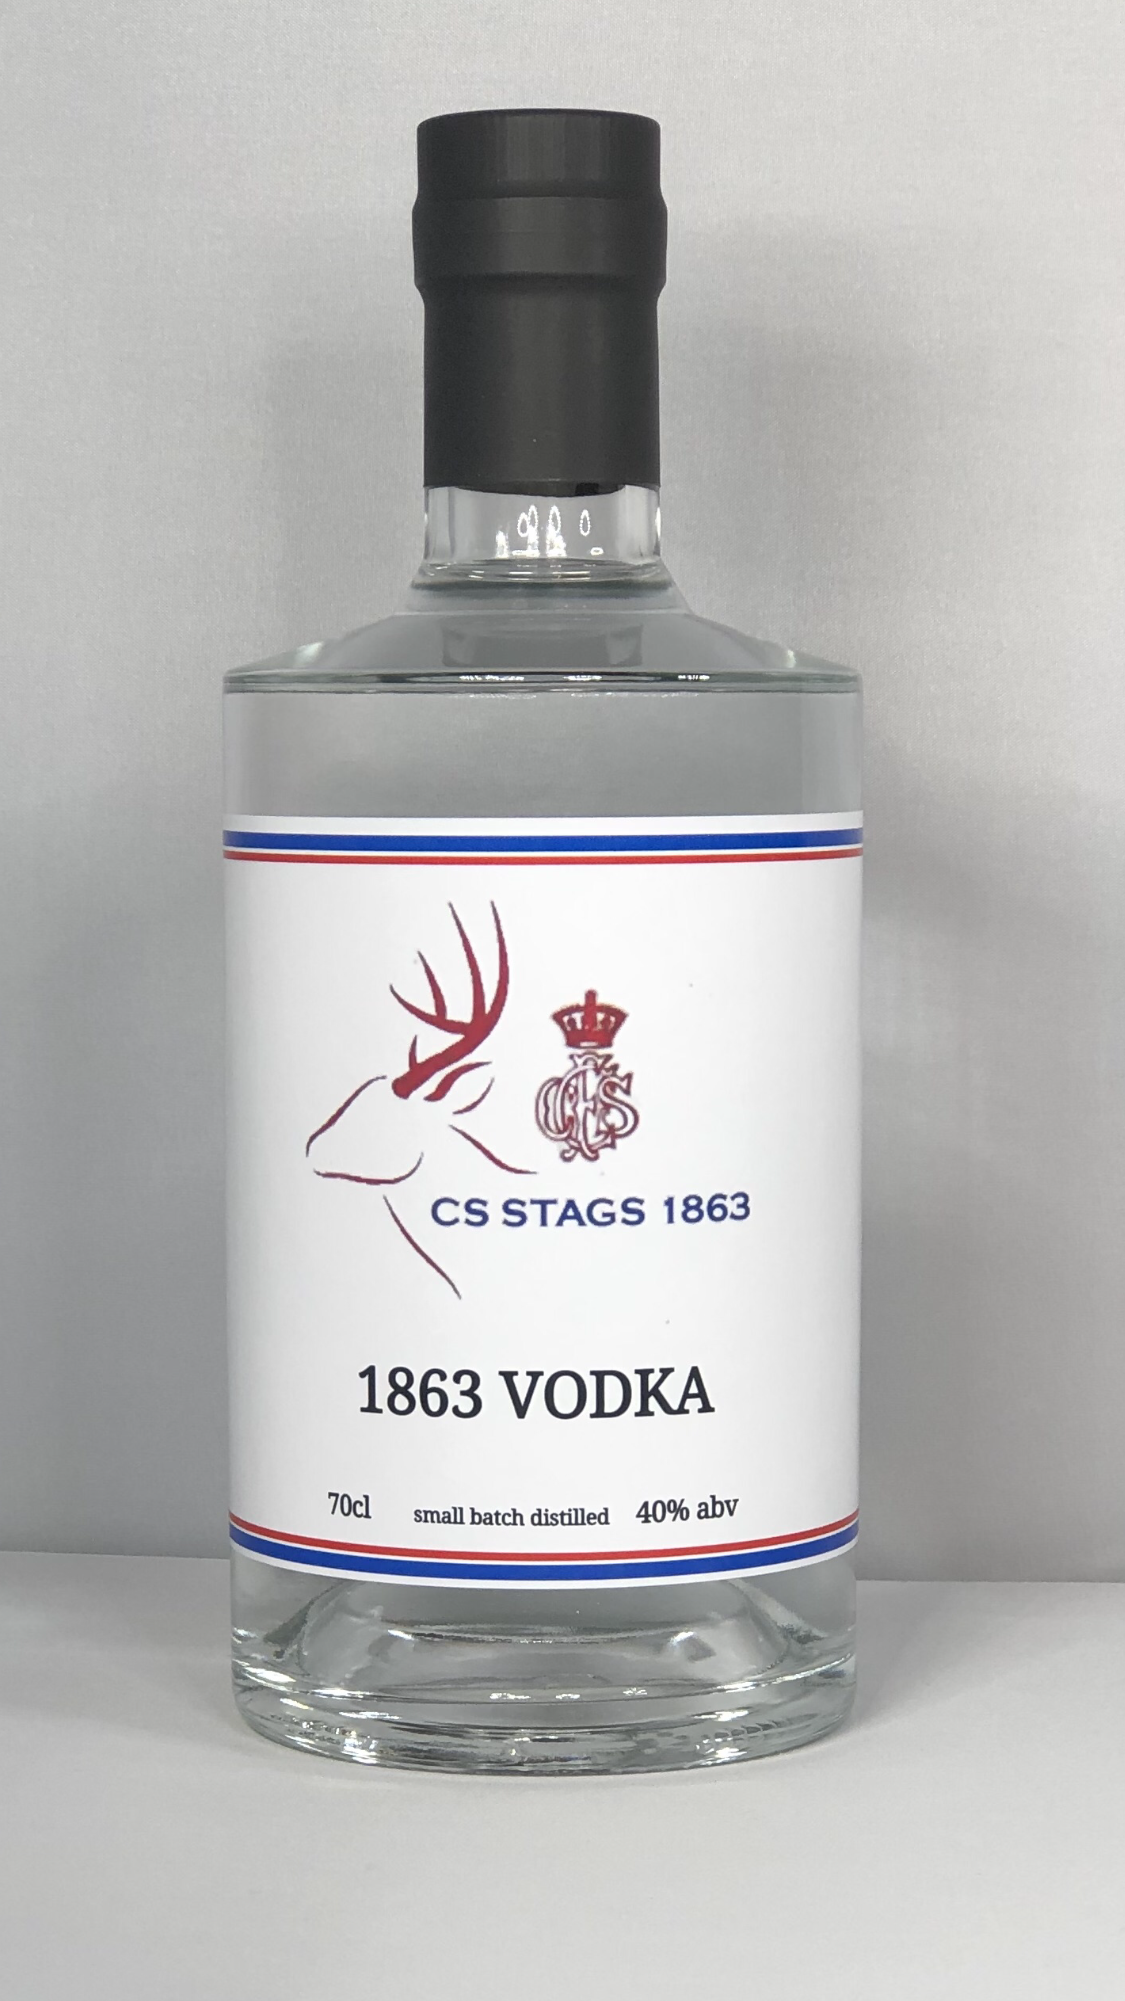 C S Stags 1863 Vodka